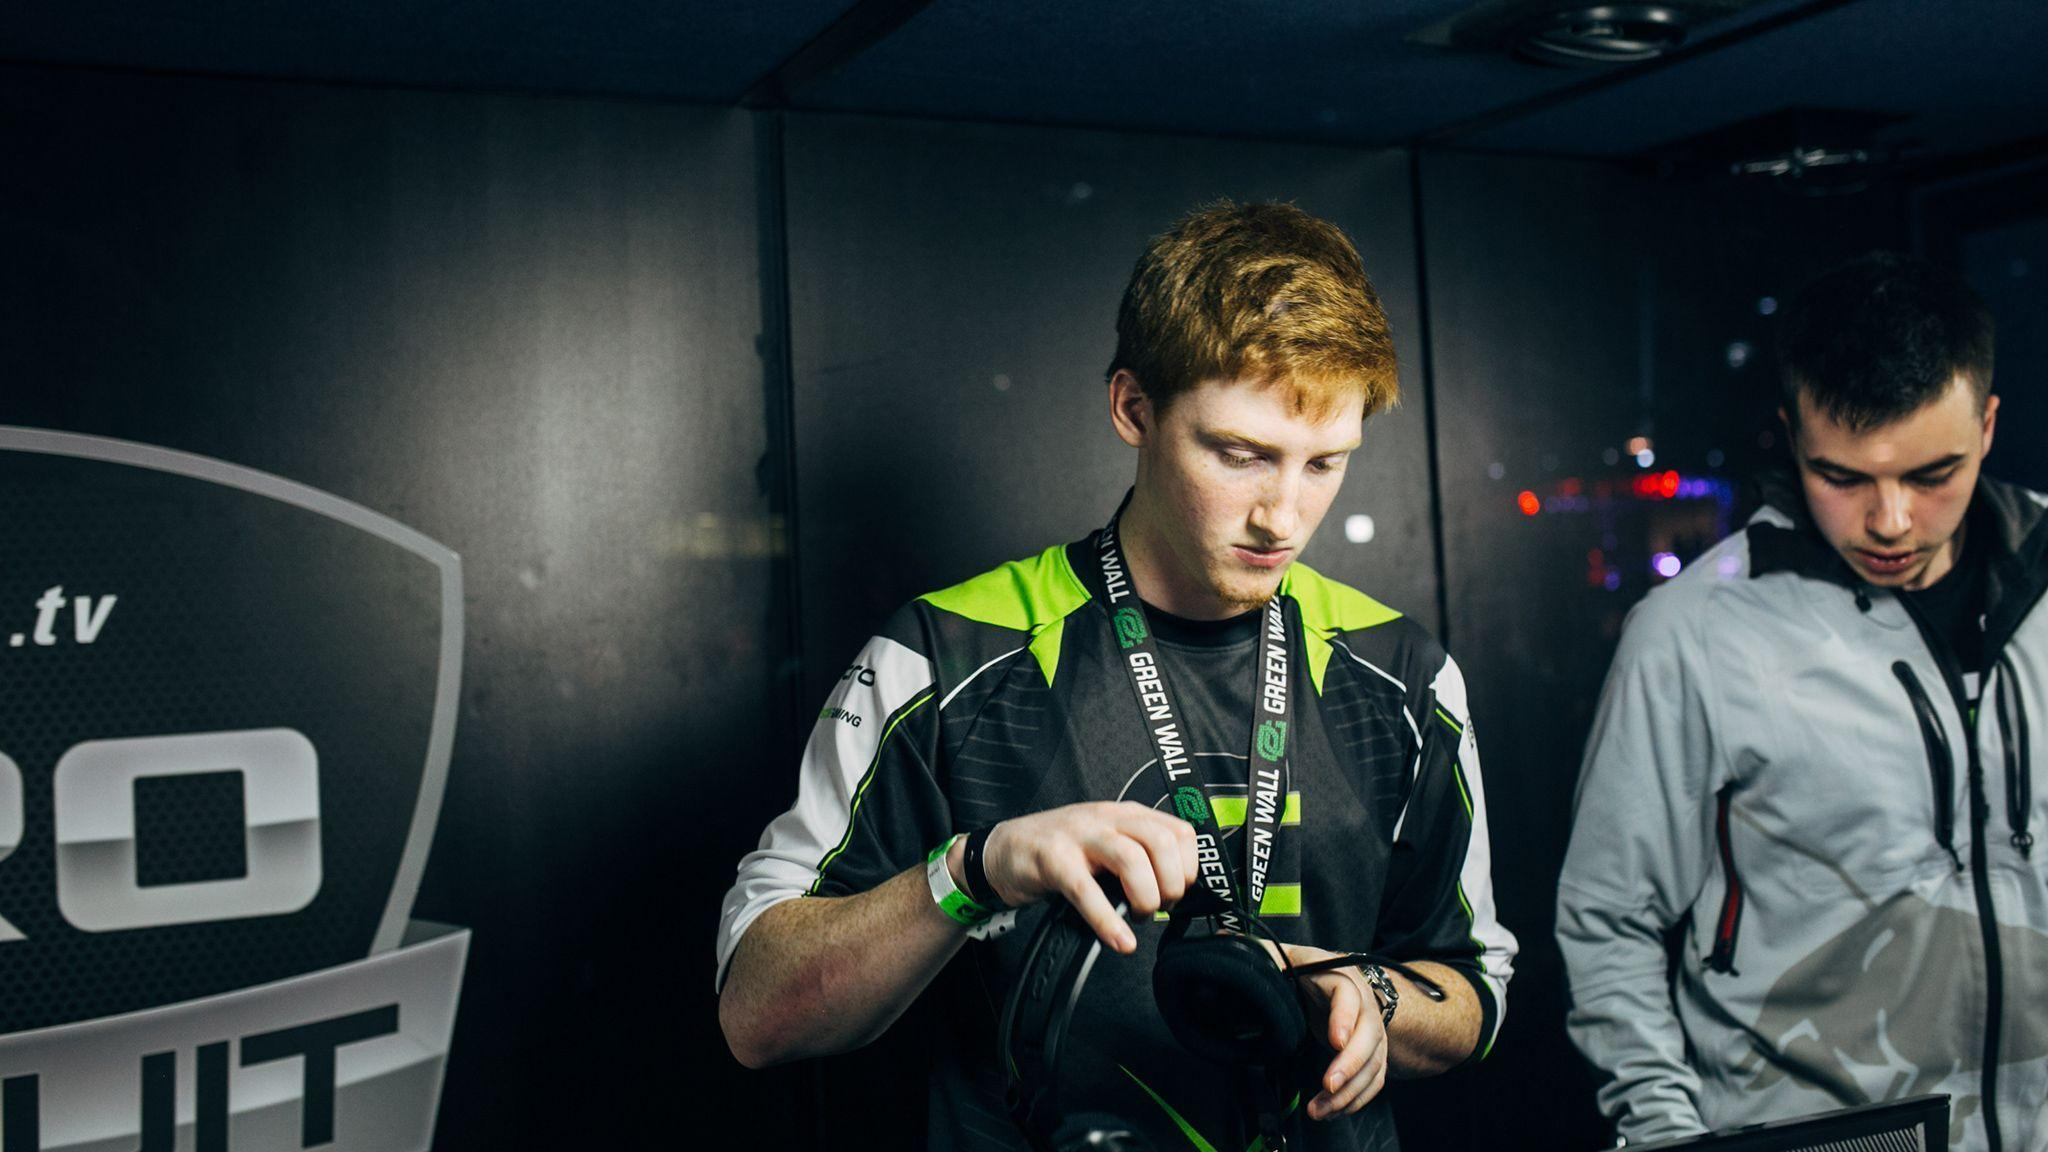 Game Wallpaper: Optic Gaming Roster Widescreen Wallpapers For HD